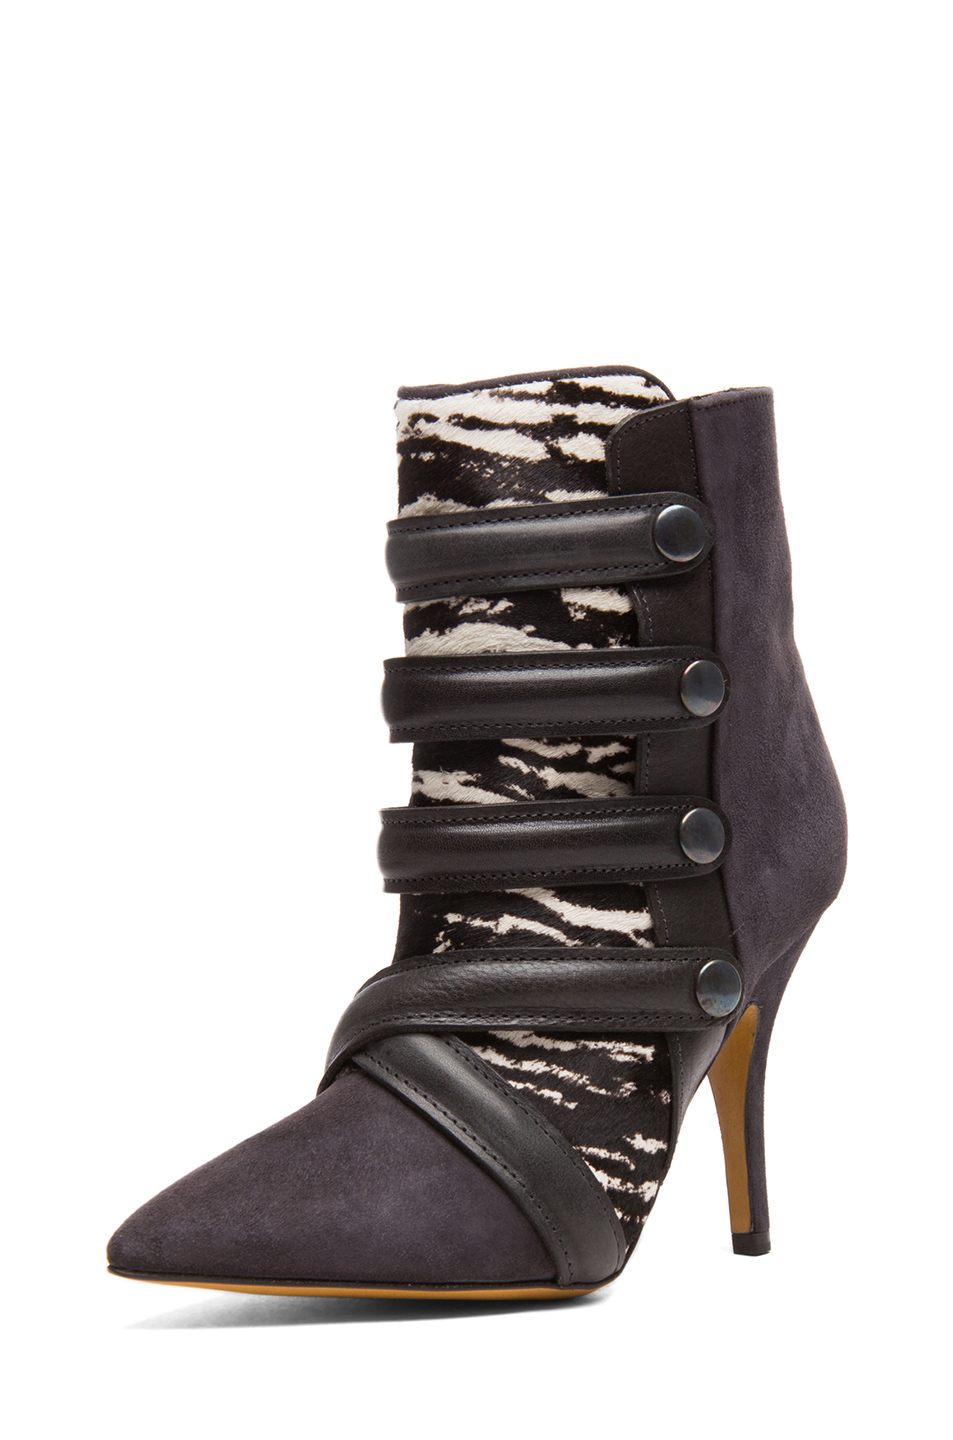 Isabel Marant Tacy Goat Suede Leather Pony Booties in Anthracite